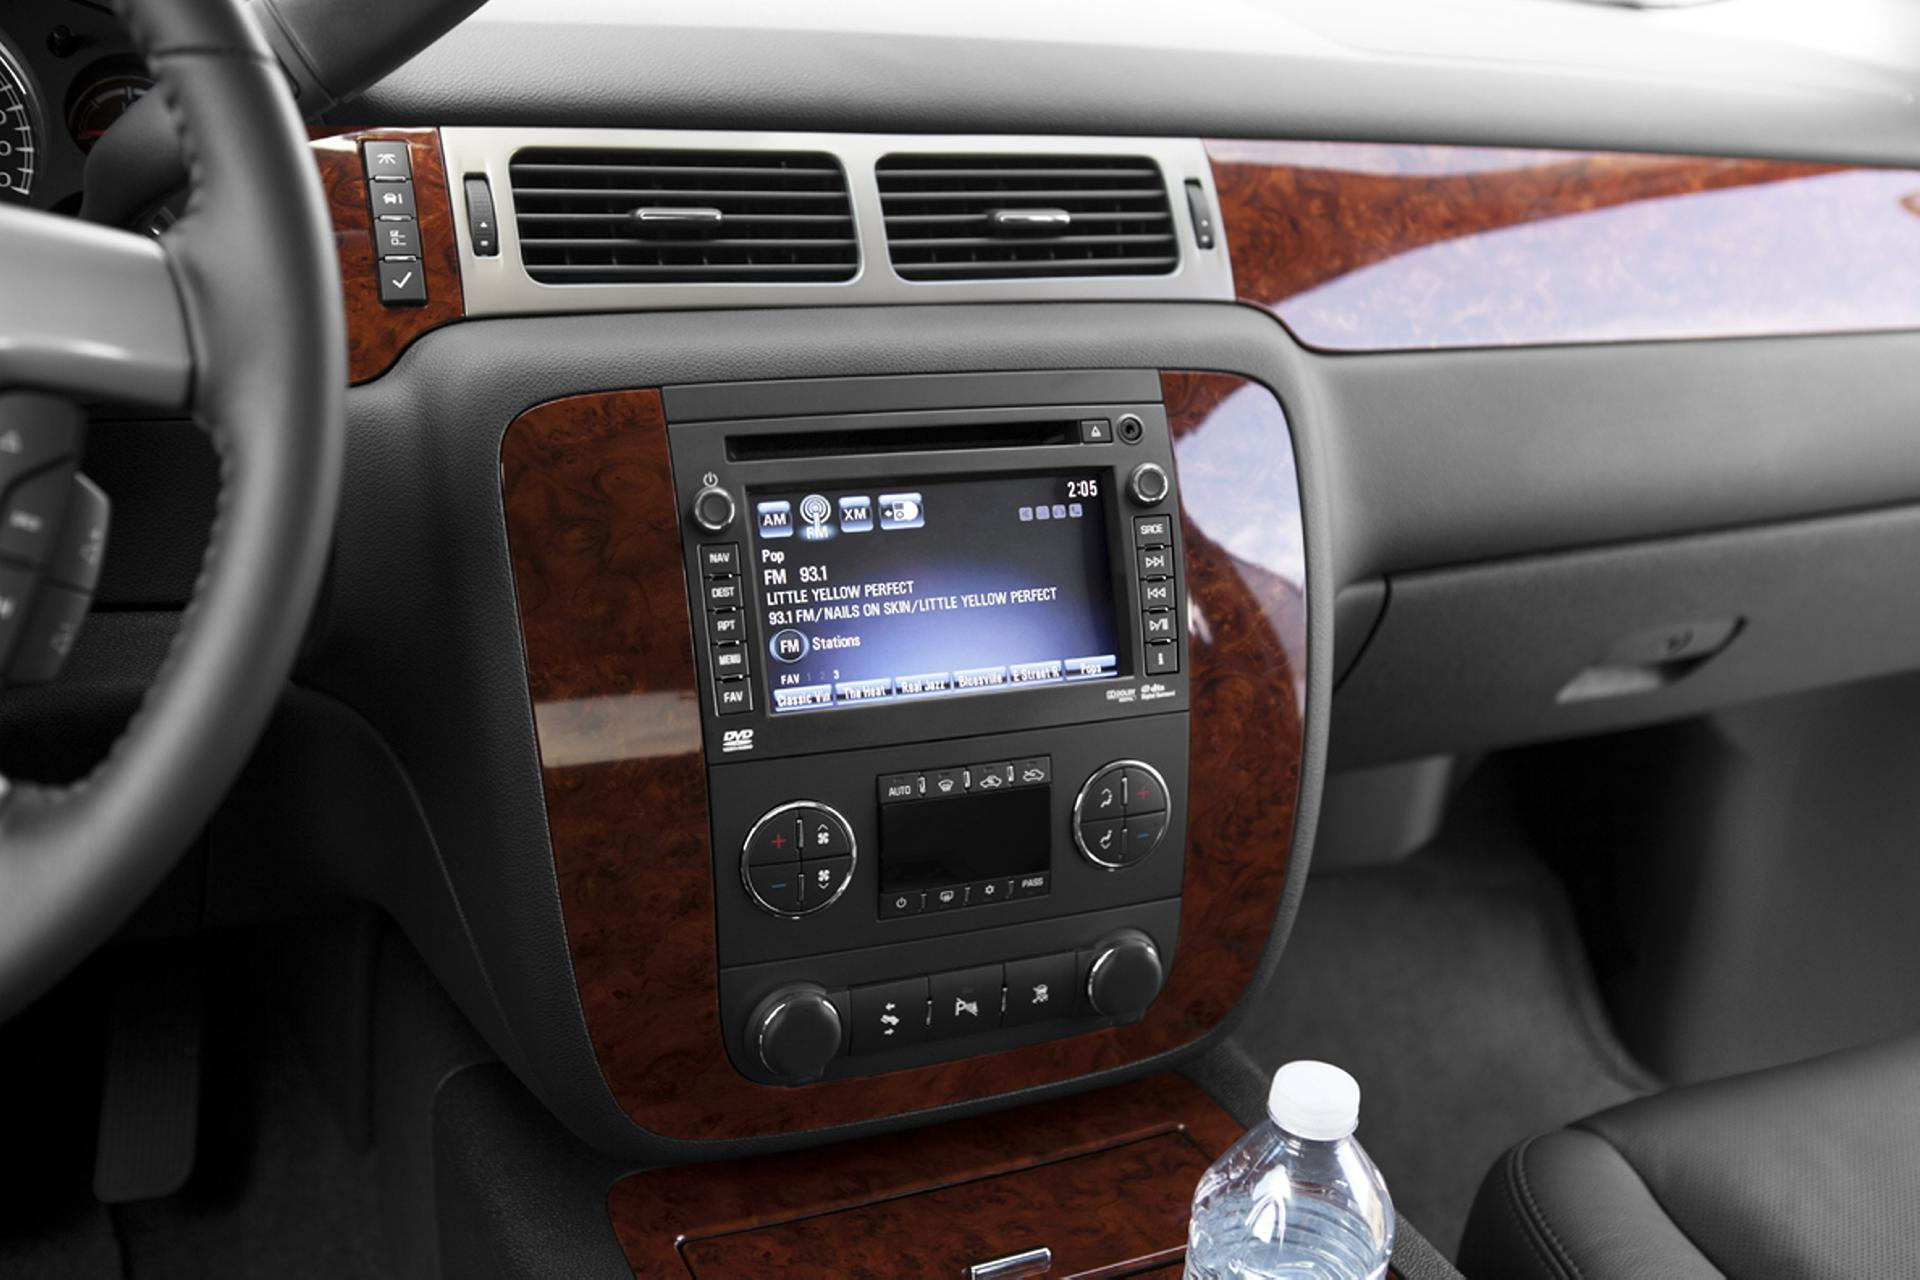 2012 Chevrolet Avalanche Wallpapers Hd Drivespark